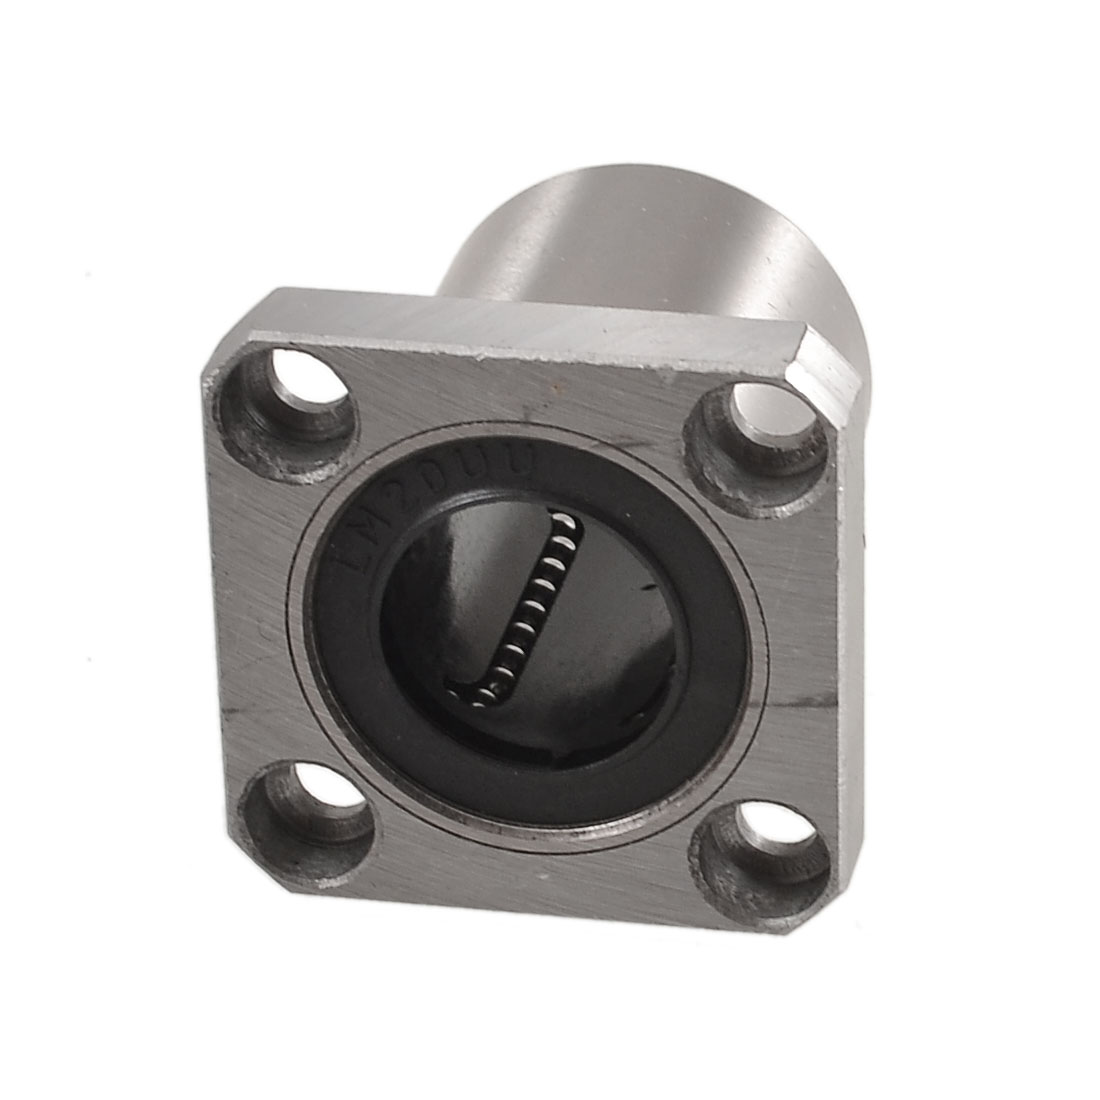 20mm Inner Diameter Square Linear Motion Bushing Ball Bearing LMK20UU